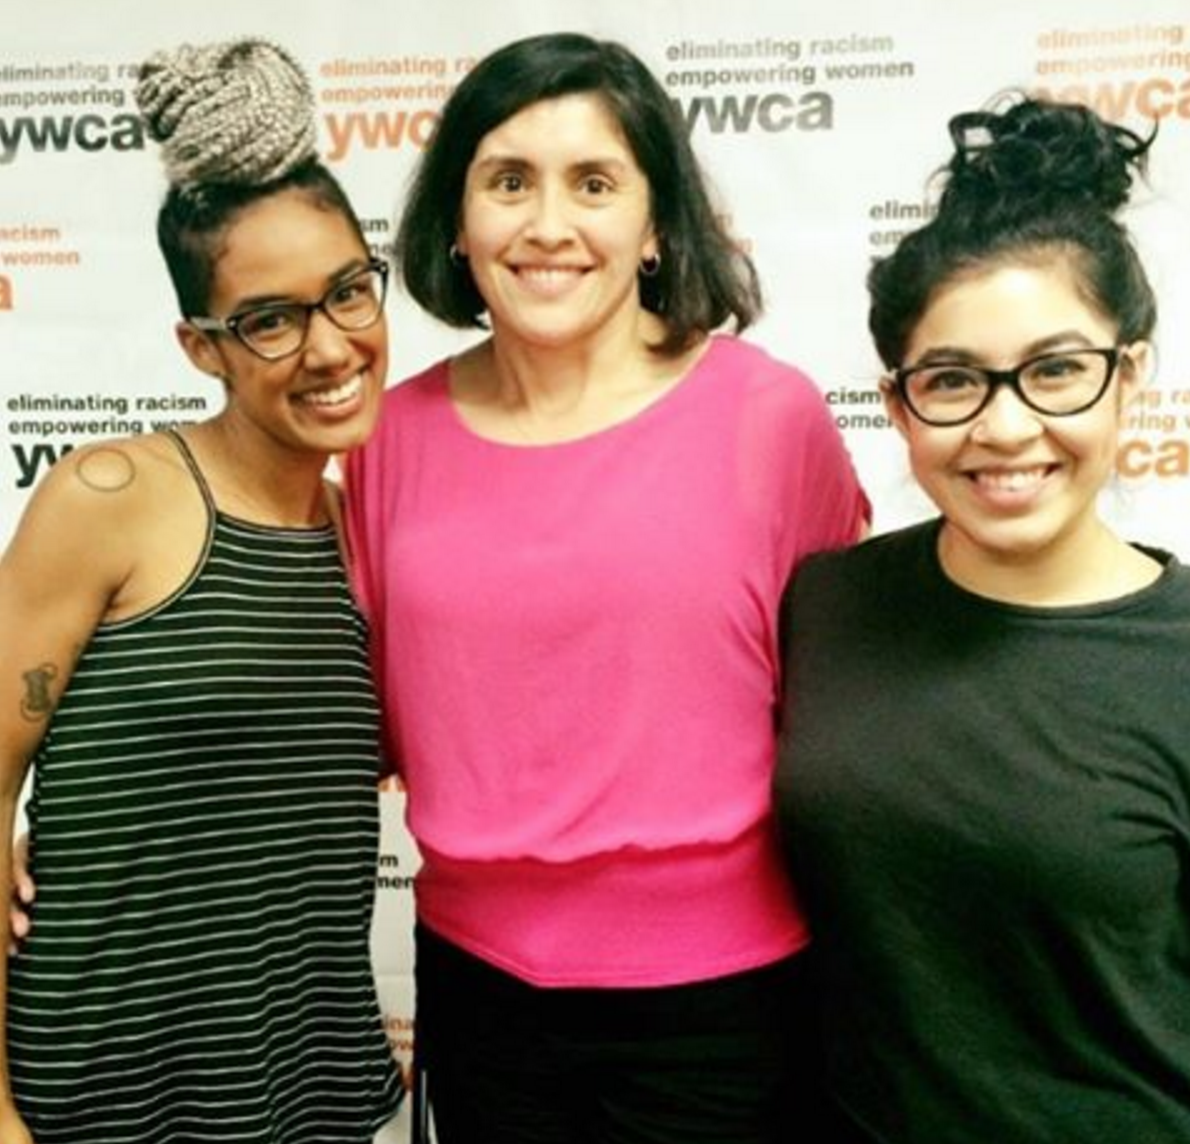 Photo from our inaugural She Talks series with the YWCA